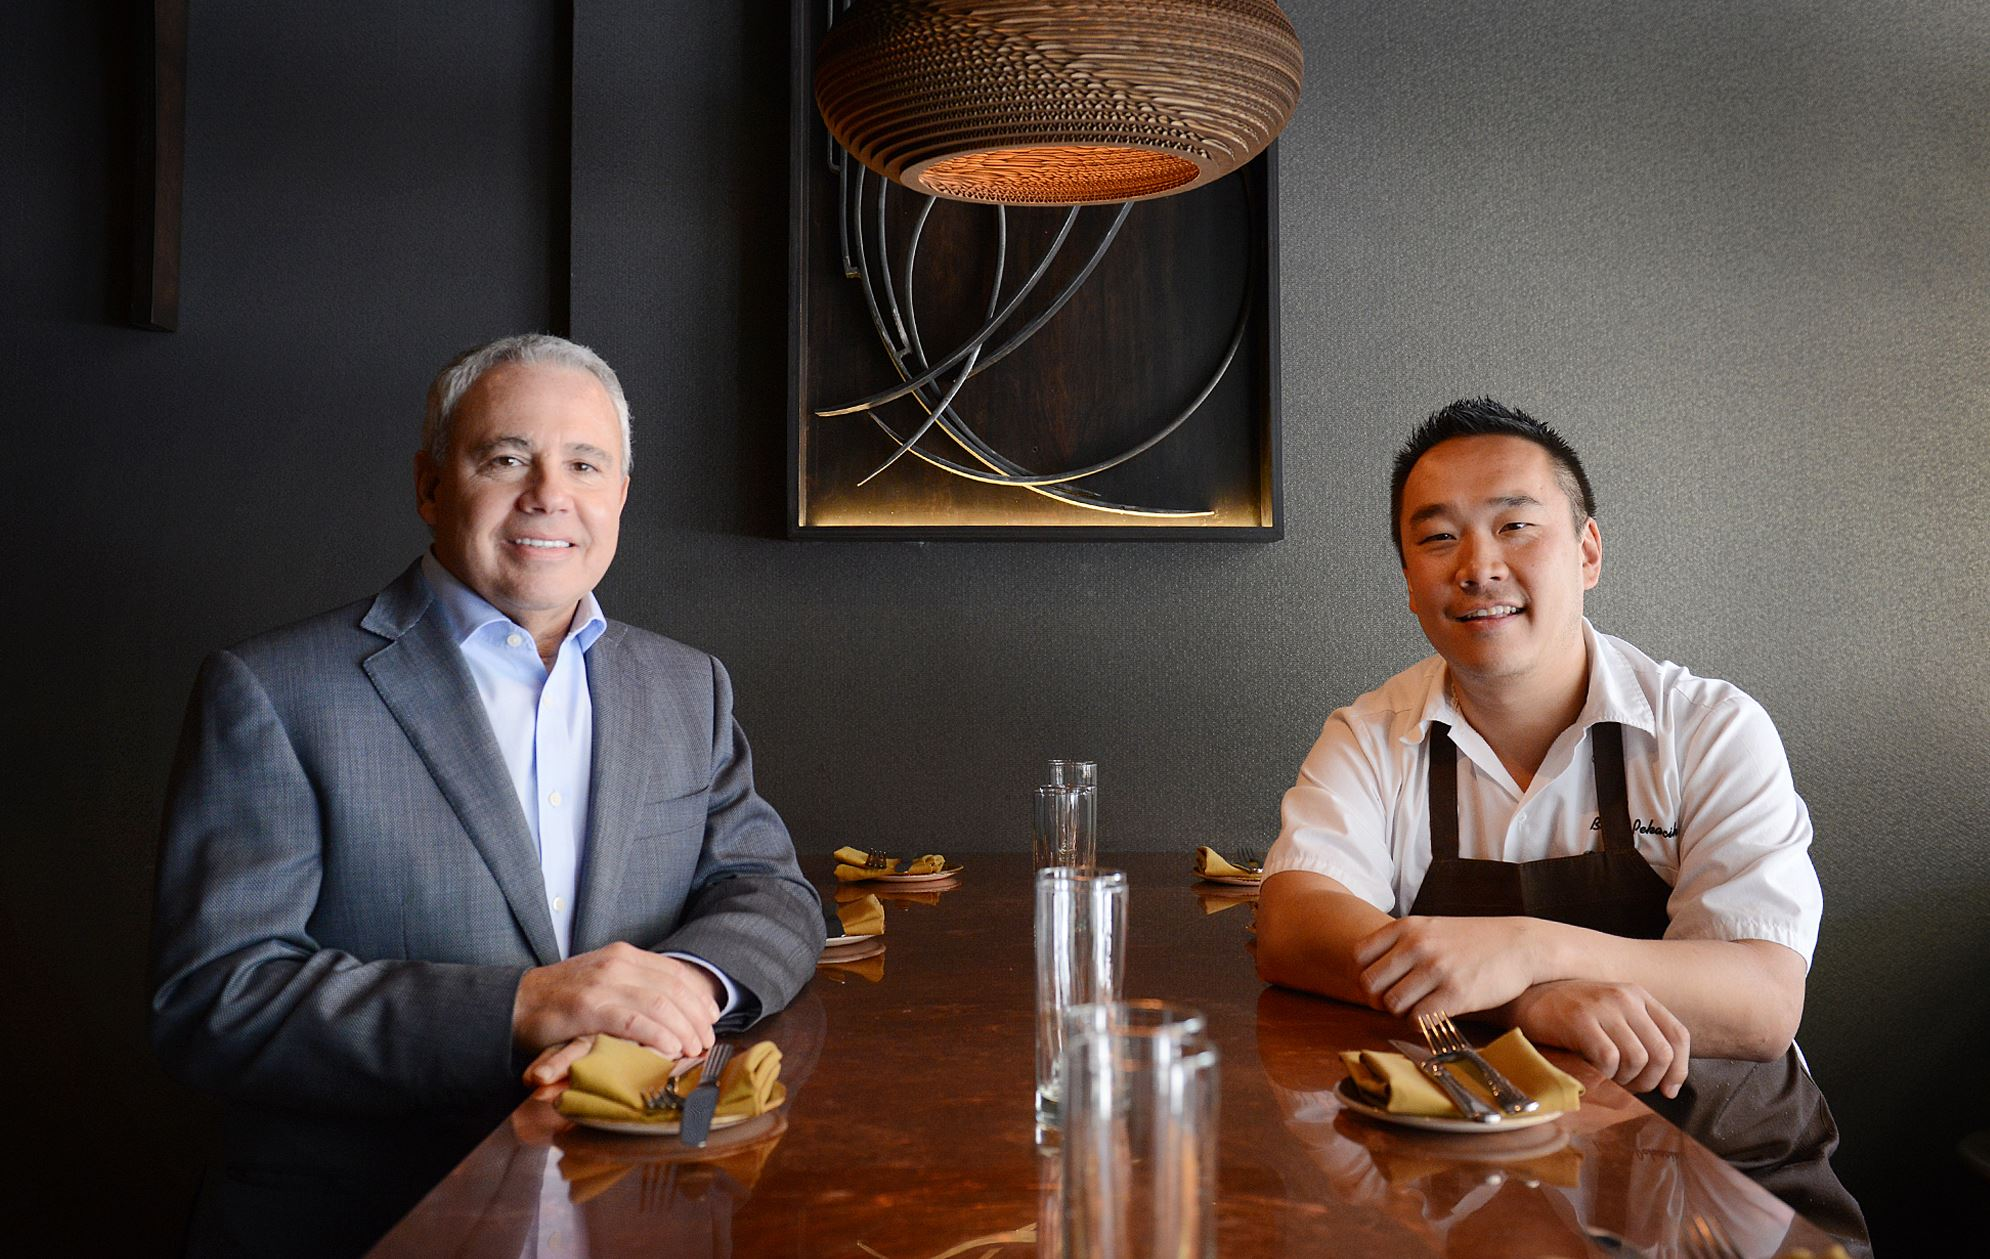 20140506jrGritGraceFood1 Rick Stern (left) and Brian Pekarcik at their new Downtown restaurant Grit & Grace.